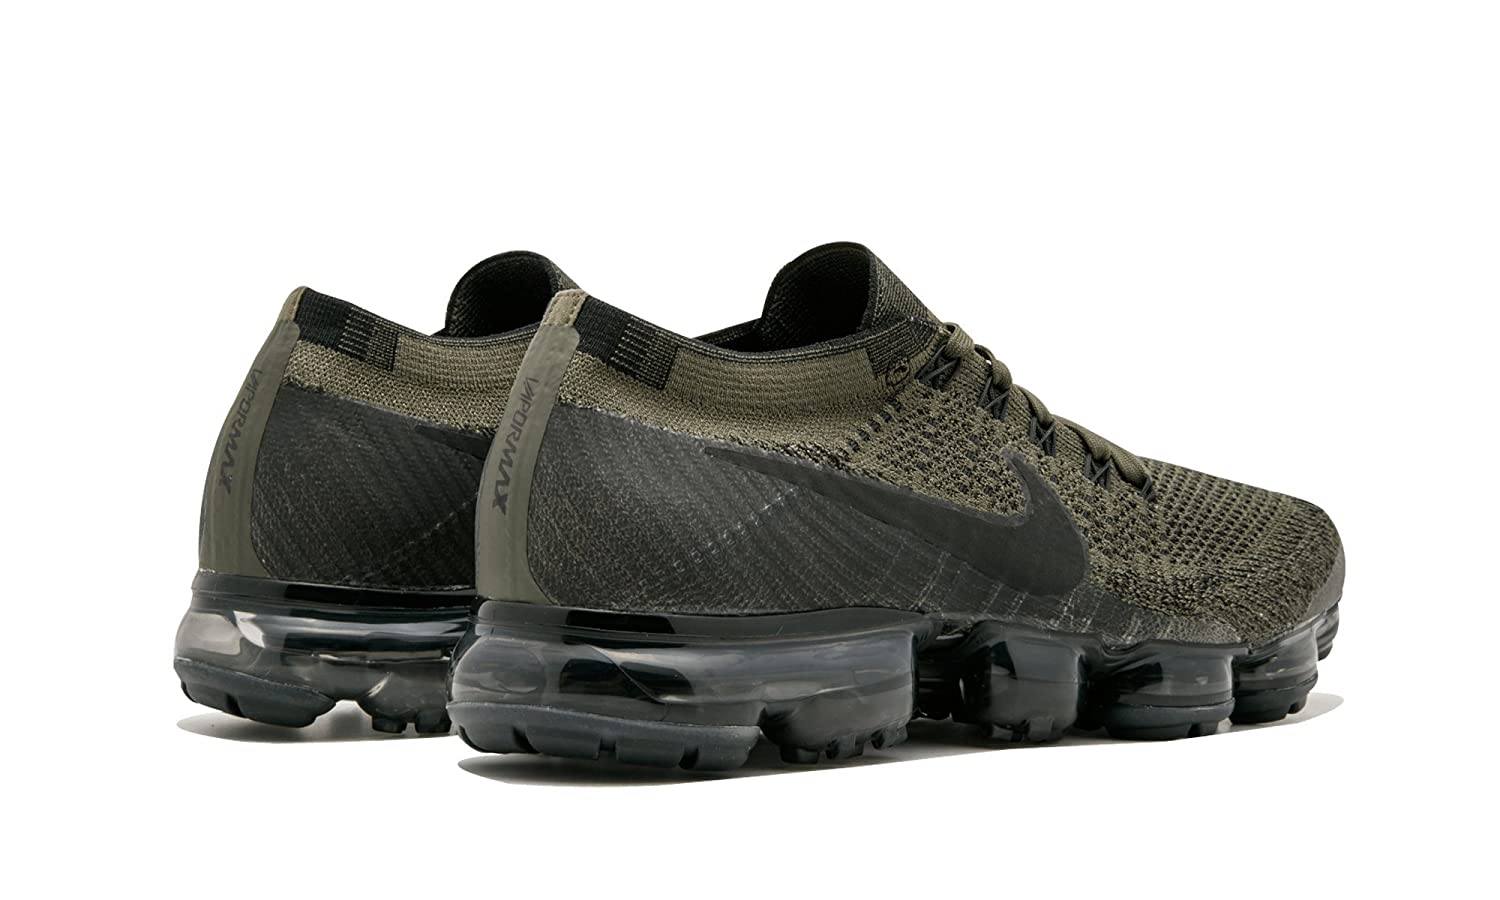 f01290d509cda ... pretty cheap Mens Nike Air VaporMax Flyknit Running Shoes (Cargo  KhakiBlackMed Olive Dark Grey) ...